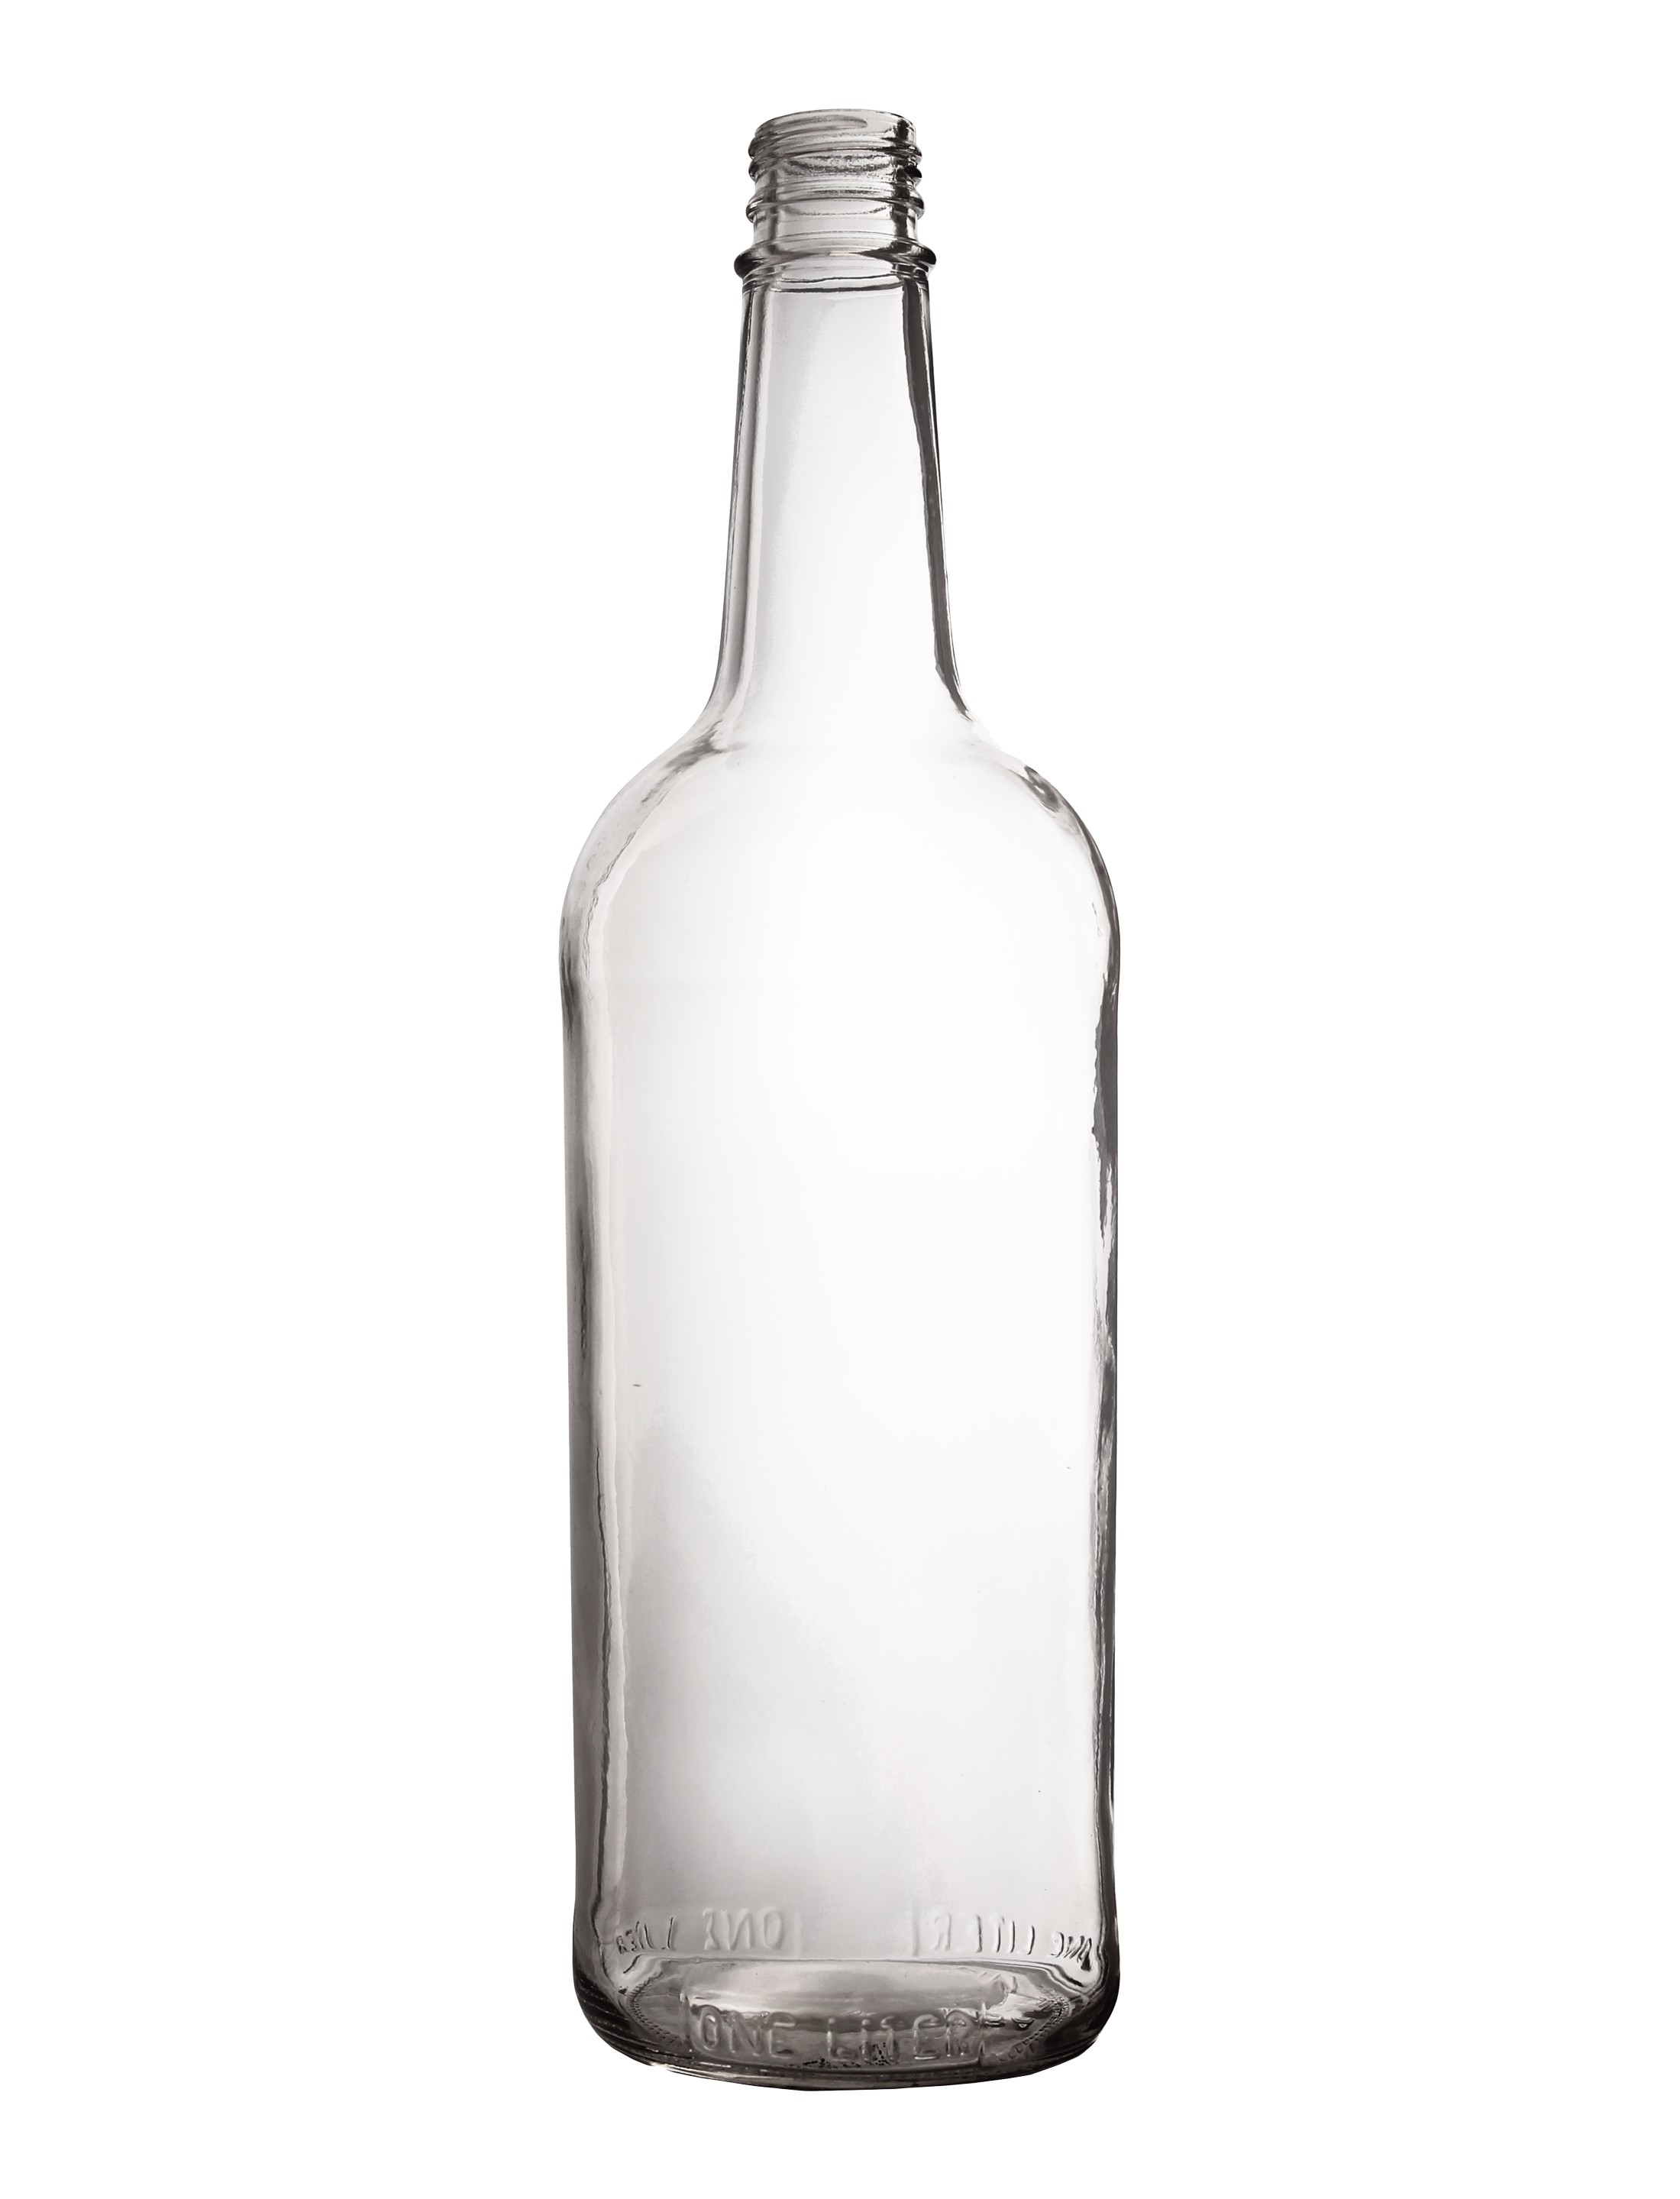 Transparent Glass Bottle Immediately Review And Download image #48920